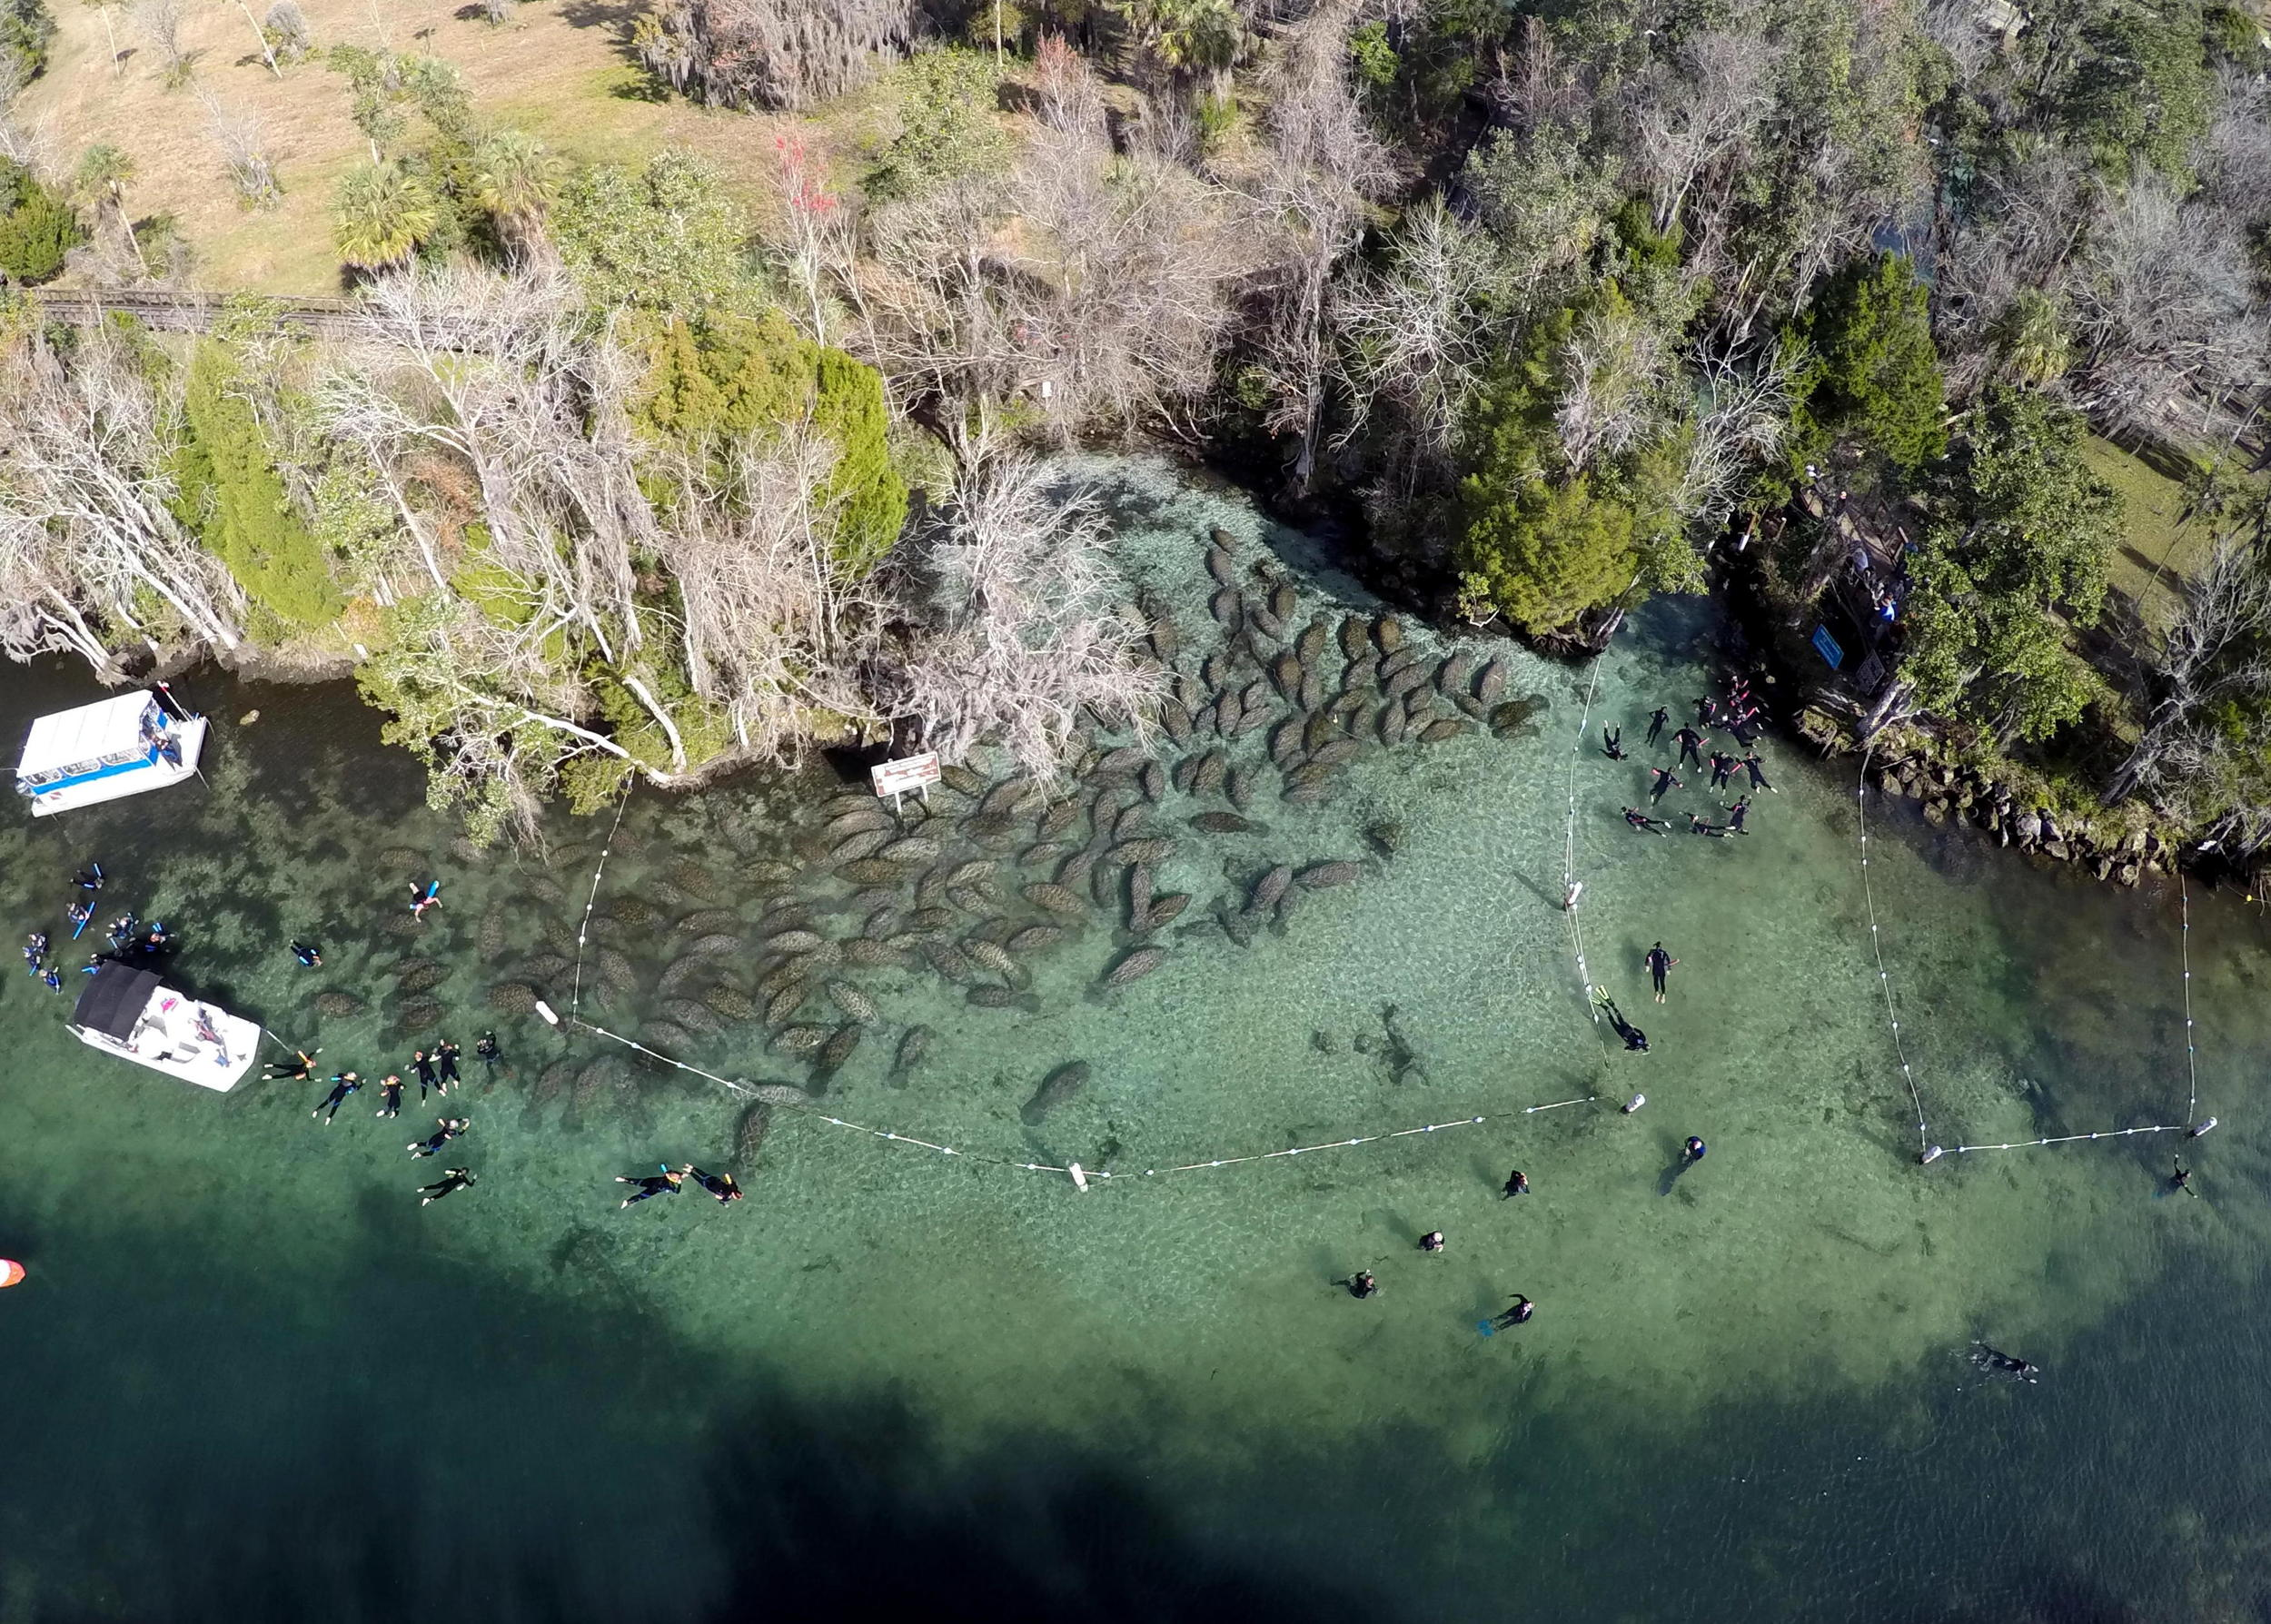 Three Sisters - Manatees and Noodlers. Image by Manuel Menendez